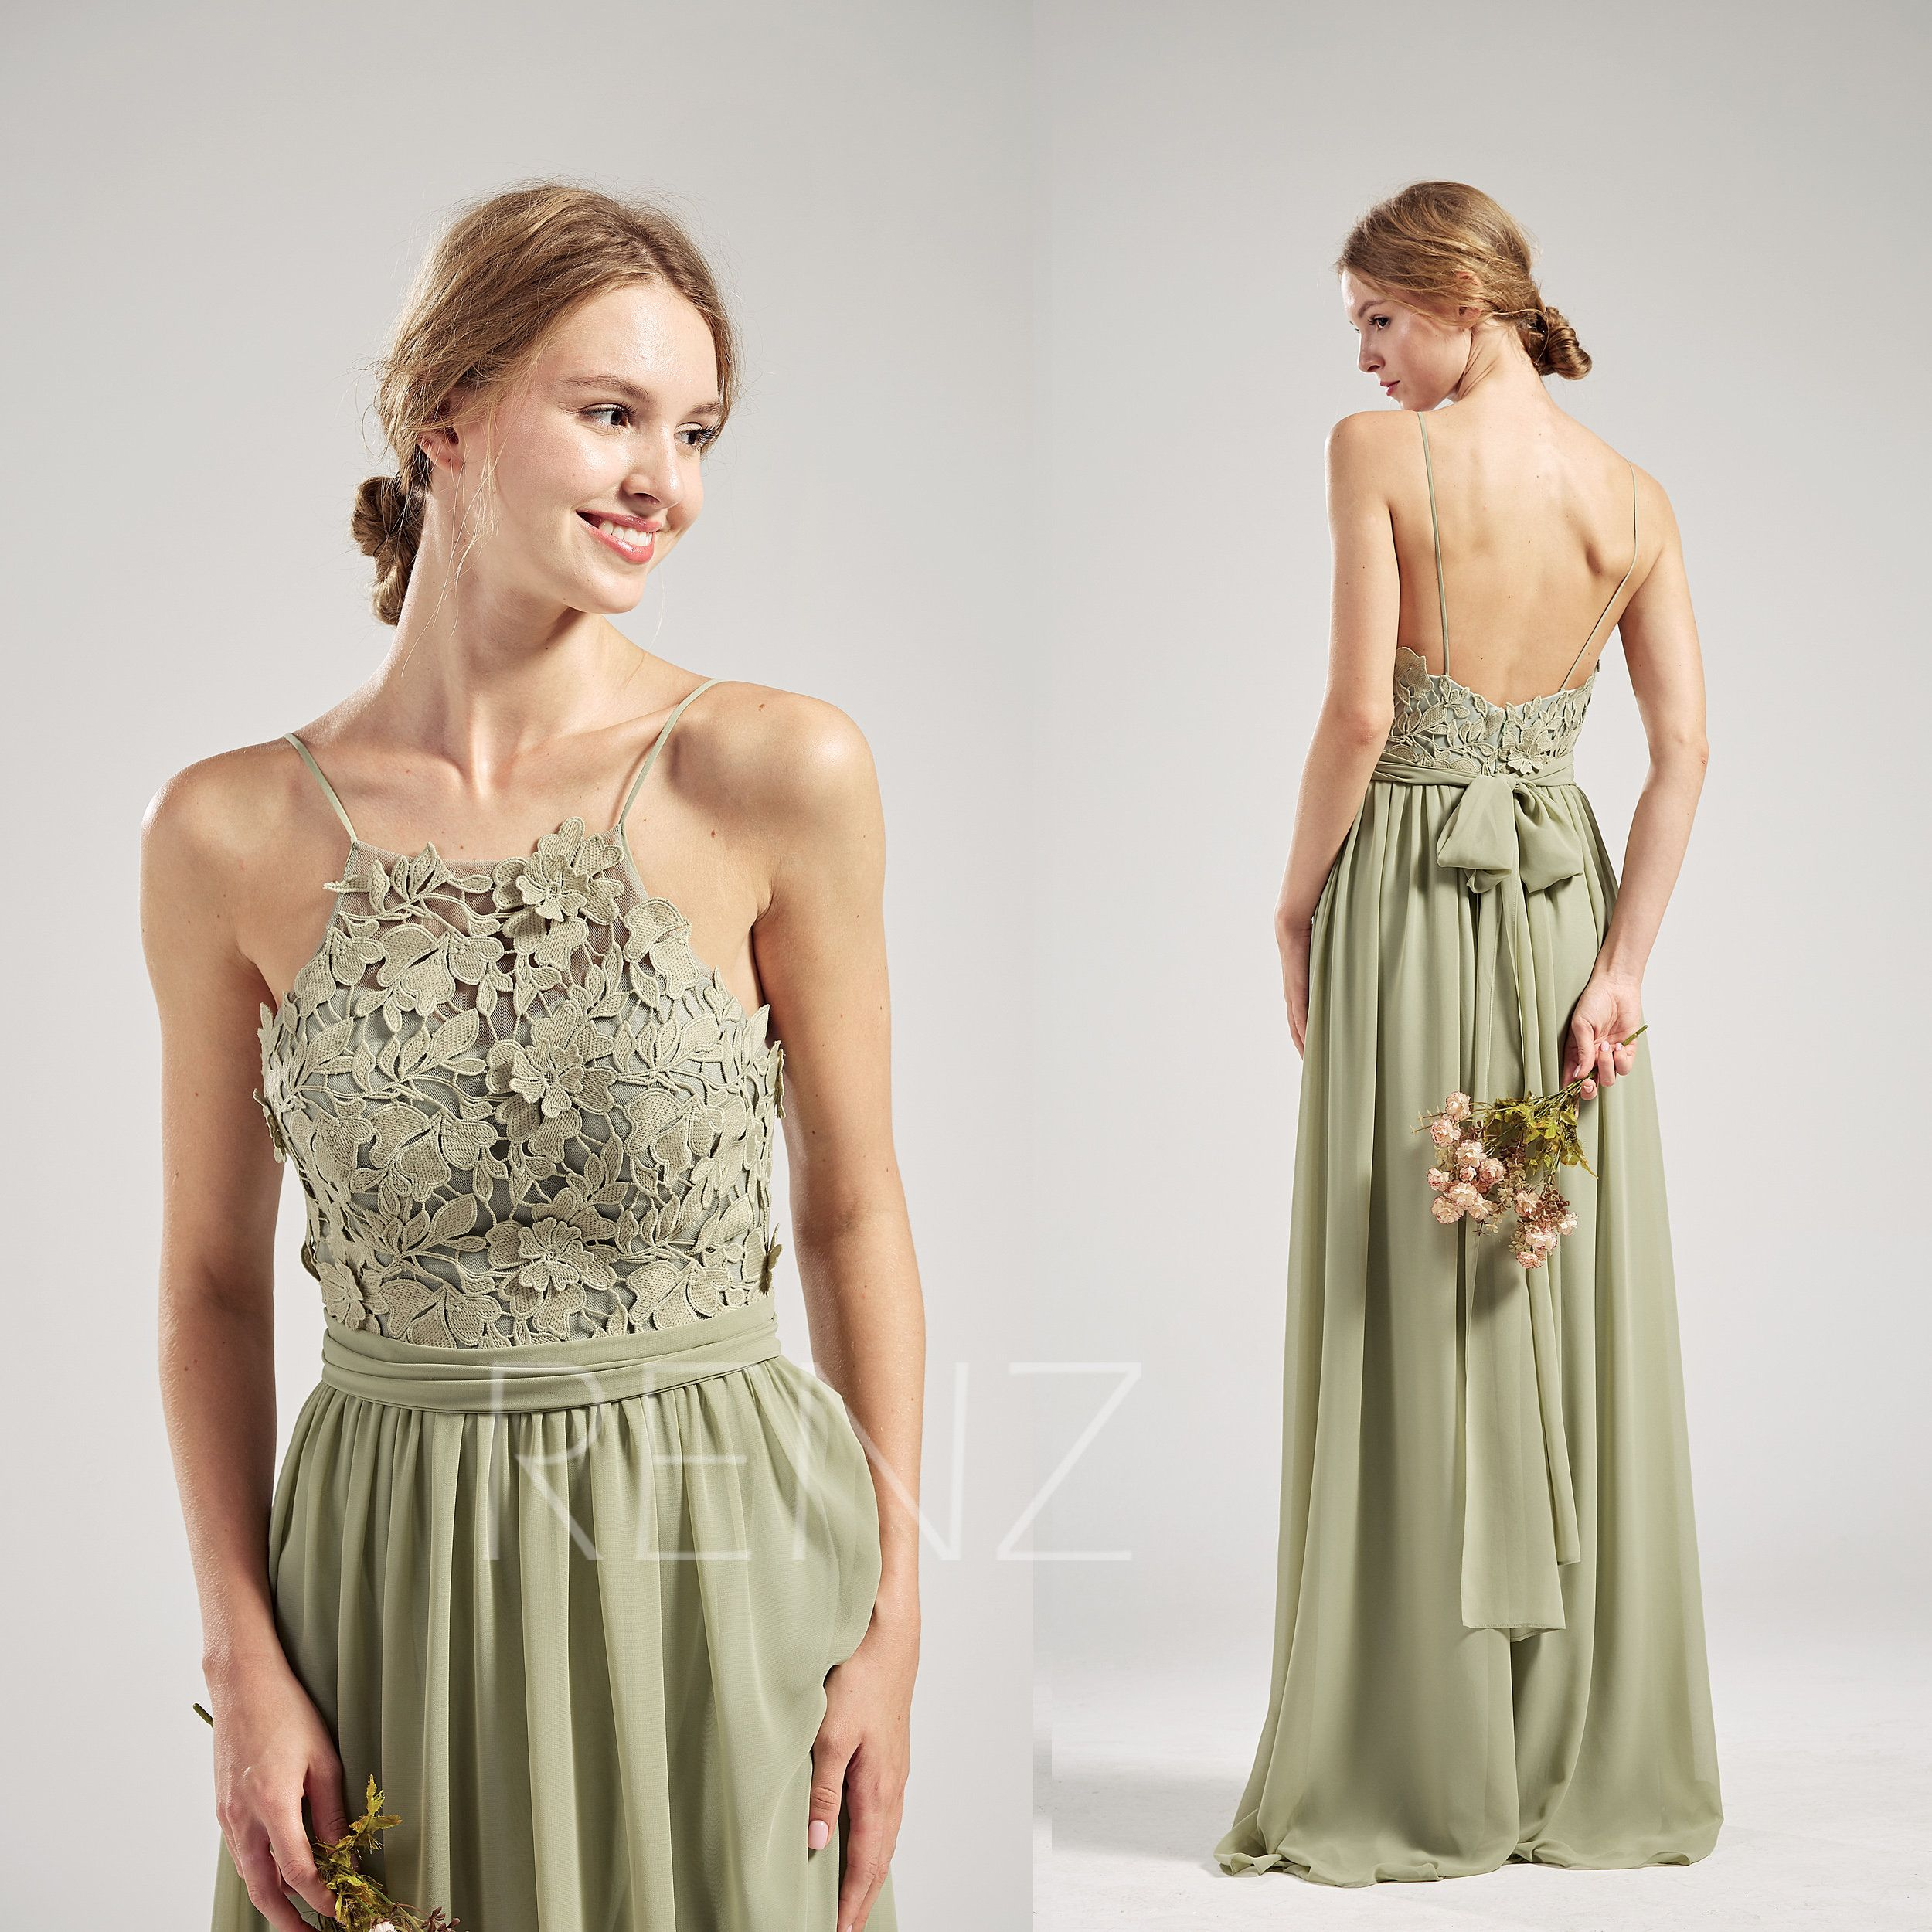 Party Dress Olive Green Bridesmaid Dress Lace Wedding Dress Spaghetti Straps Backless Prom Green Bridesmaid Dresses Lace Olive Green Bridesmaid Dresses Dresses